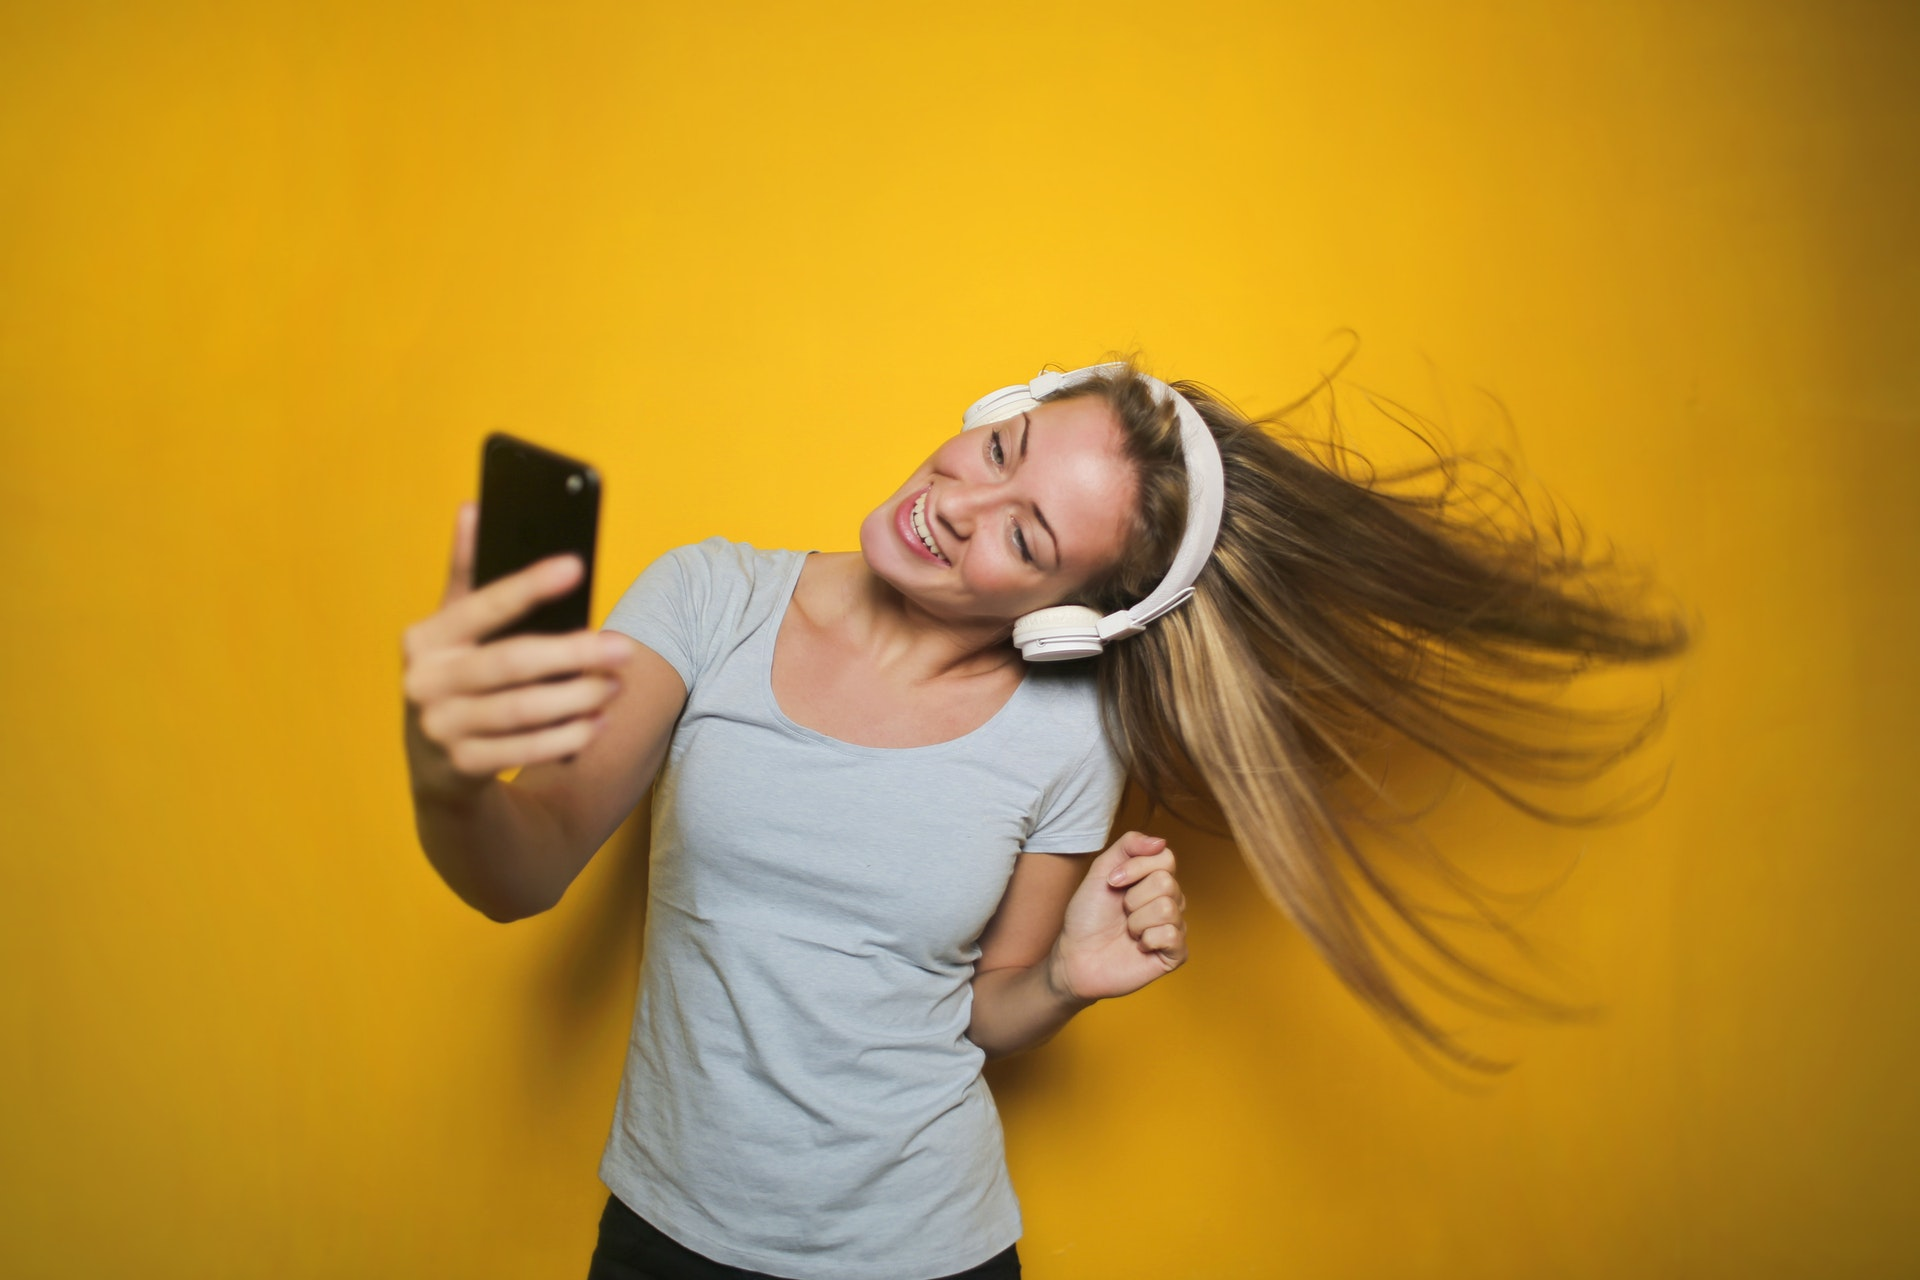 Girl enjoying portable music with headphones on